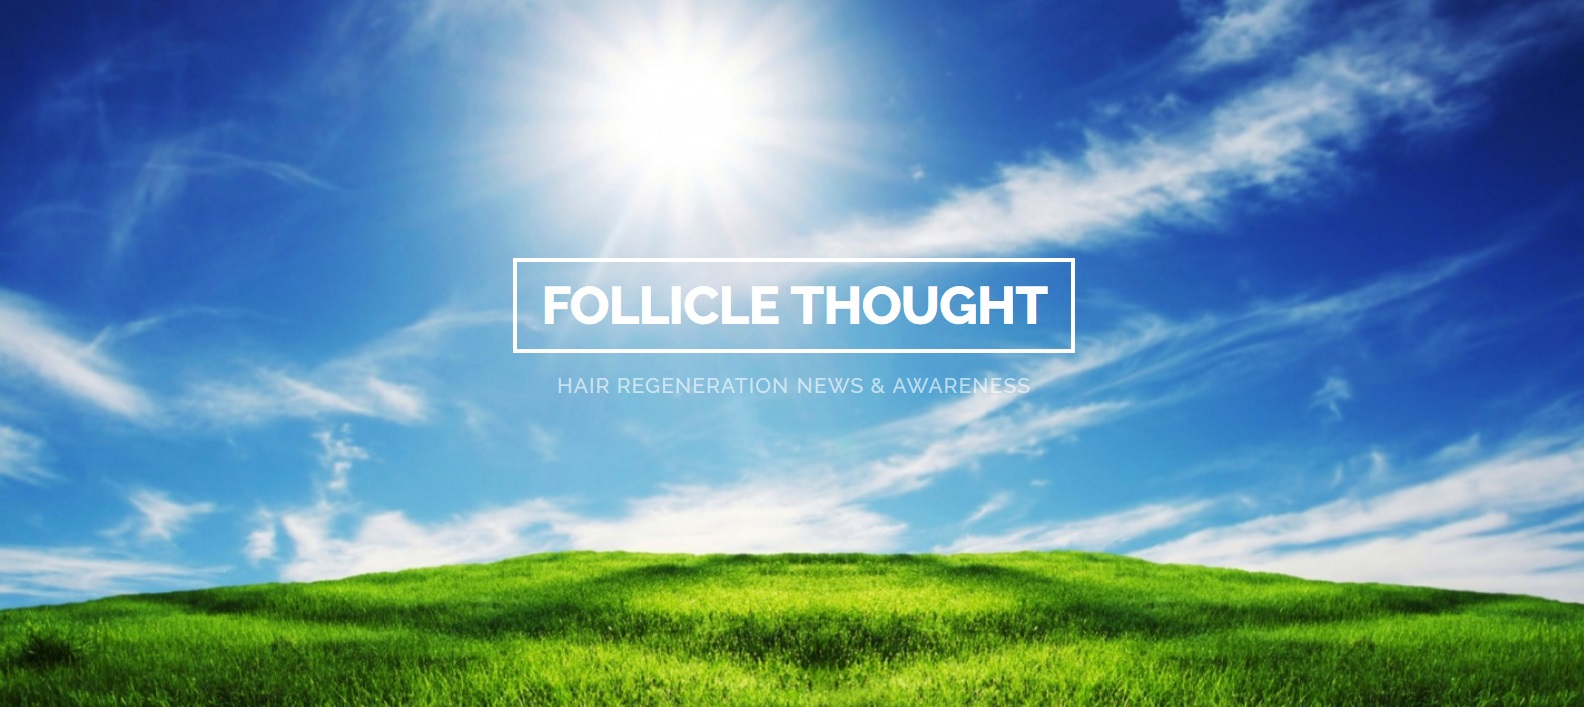 Follicle Thought